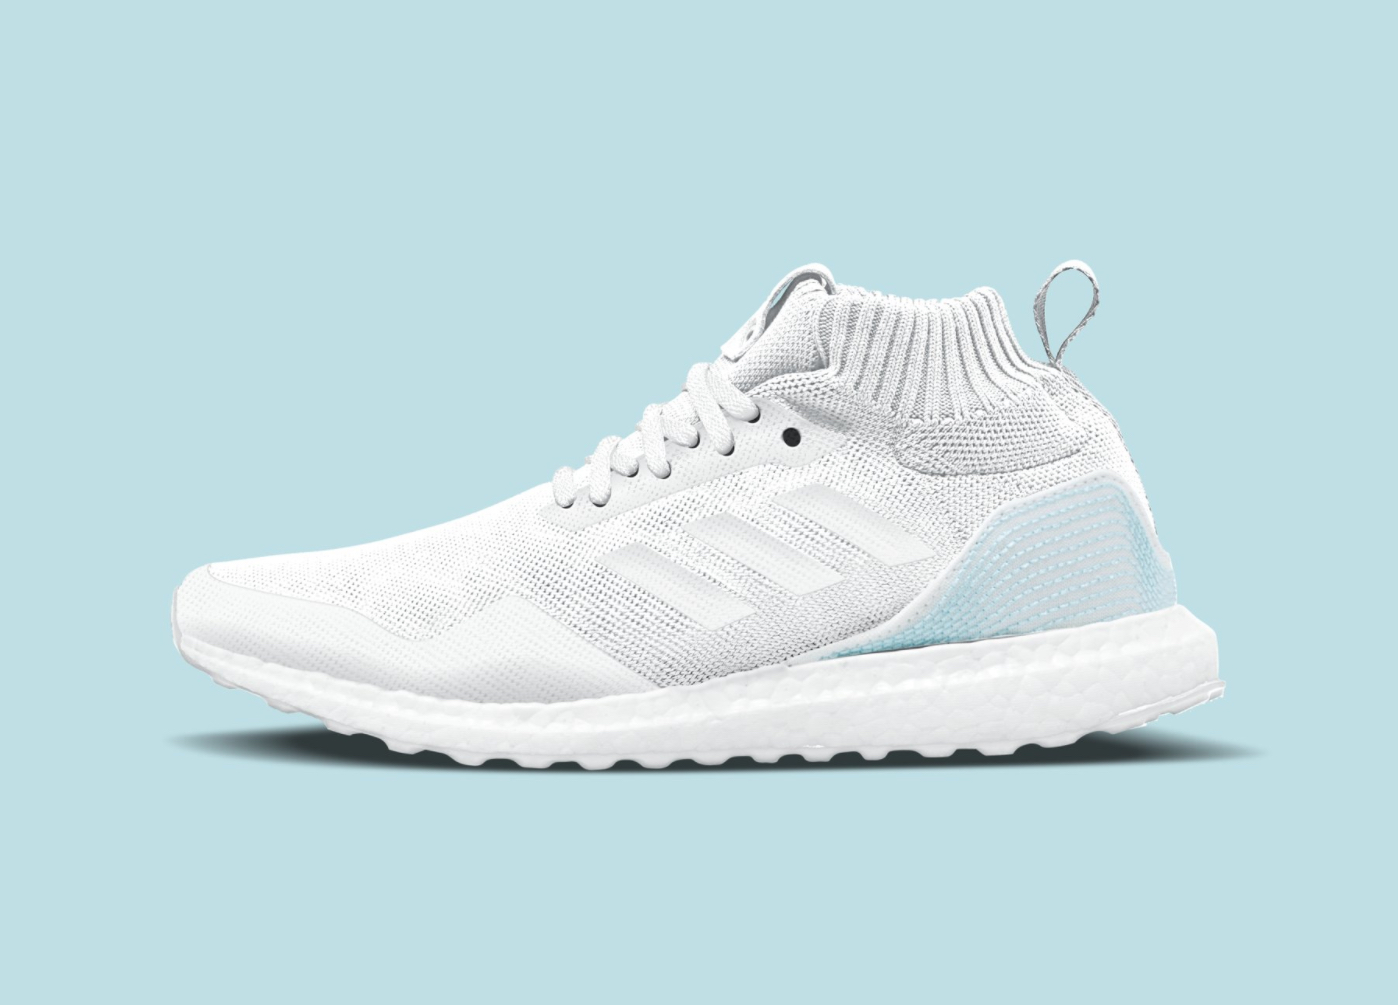 outlet store d7111 03078 parley adidas ultra boost mid 2. Dec7